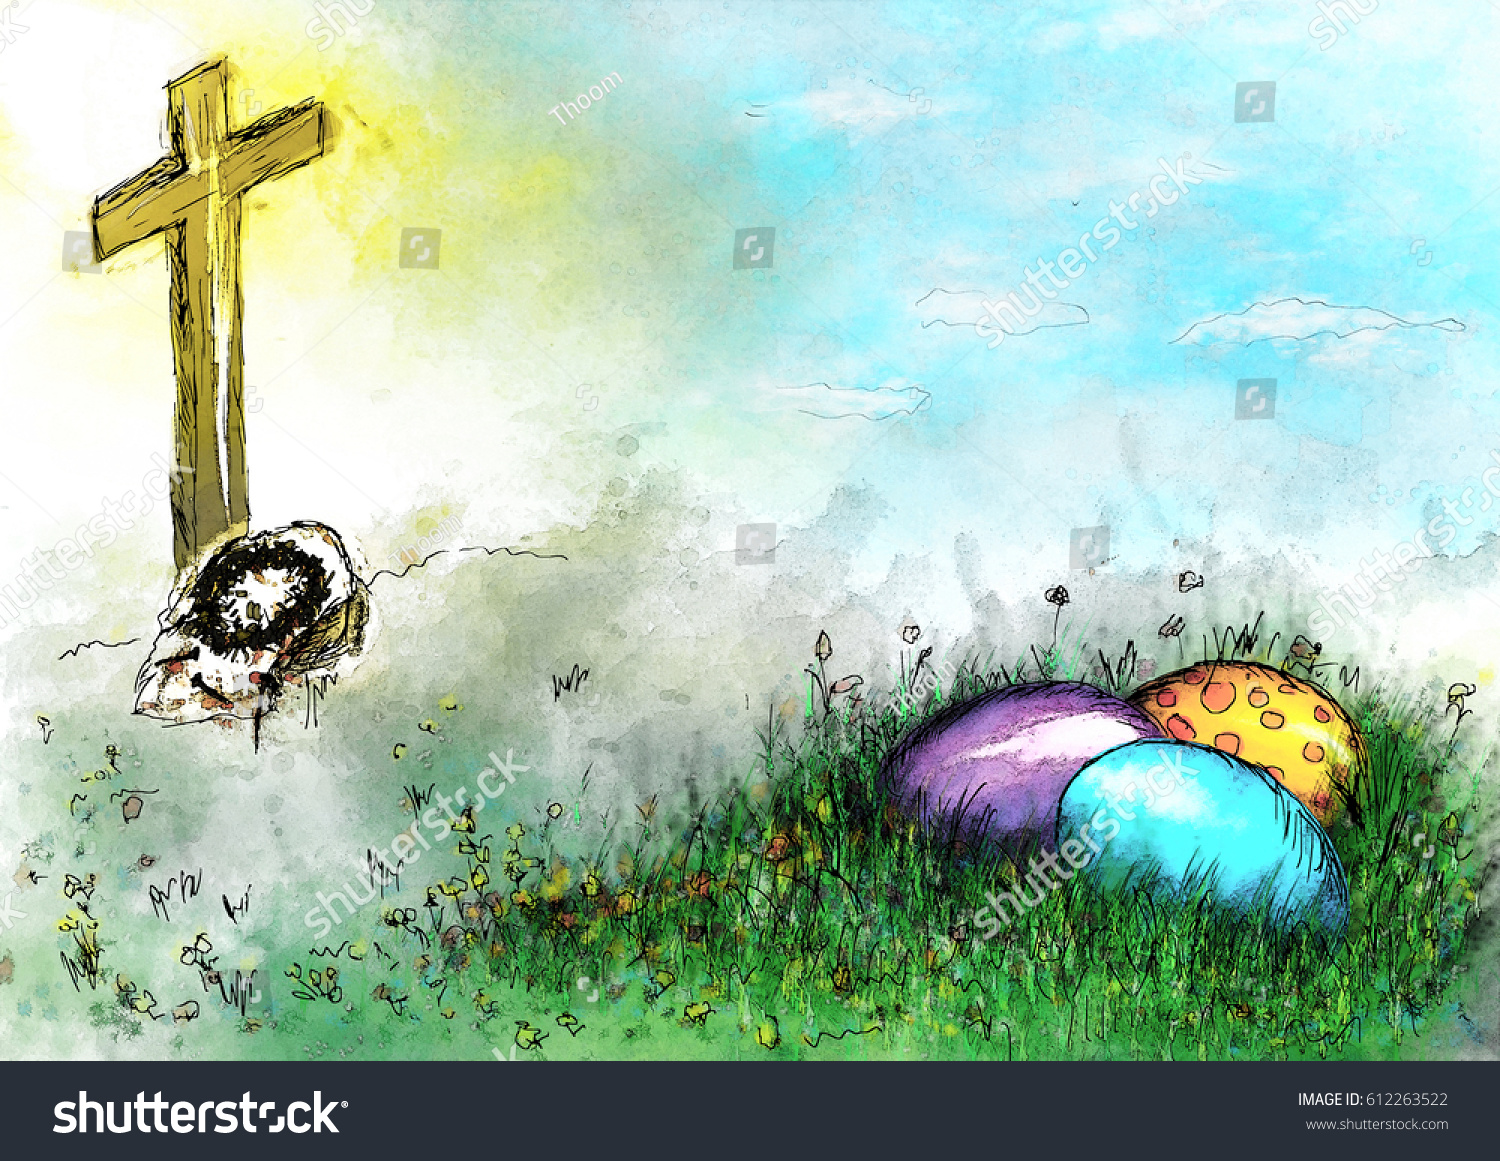 Easter Resurrection Religious Background With Painted Colorful Eggs In The Grass And Empty